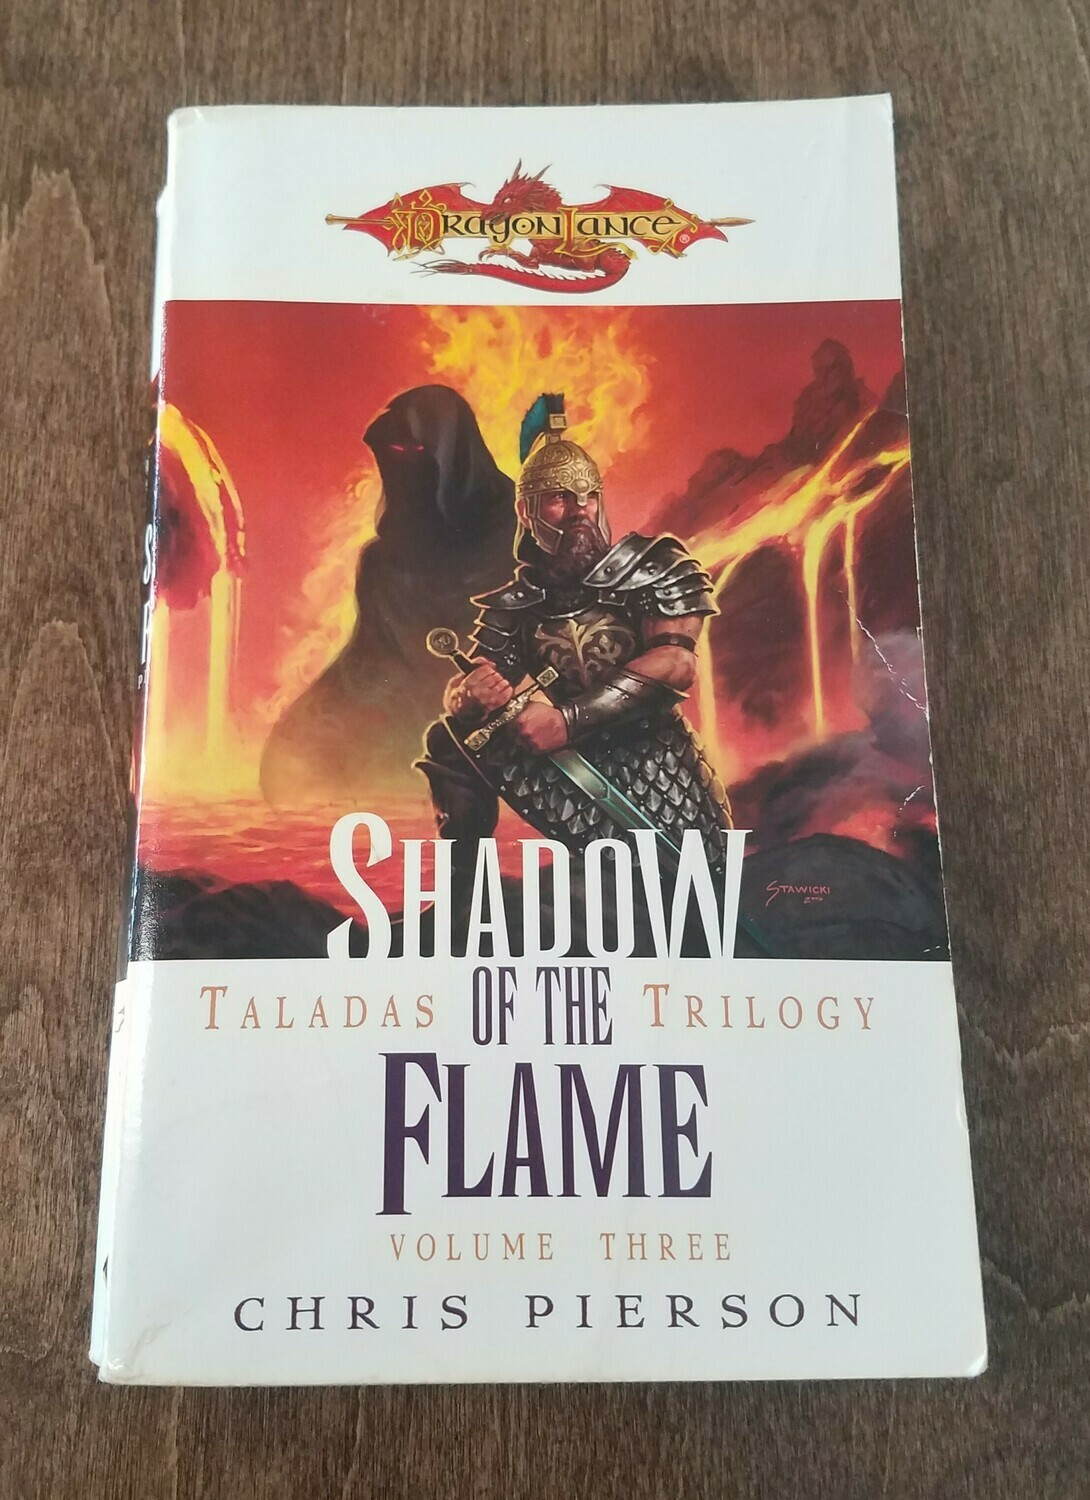 Dragon Lance: Shadow of the Flame by Chris Pierson